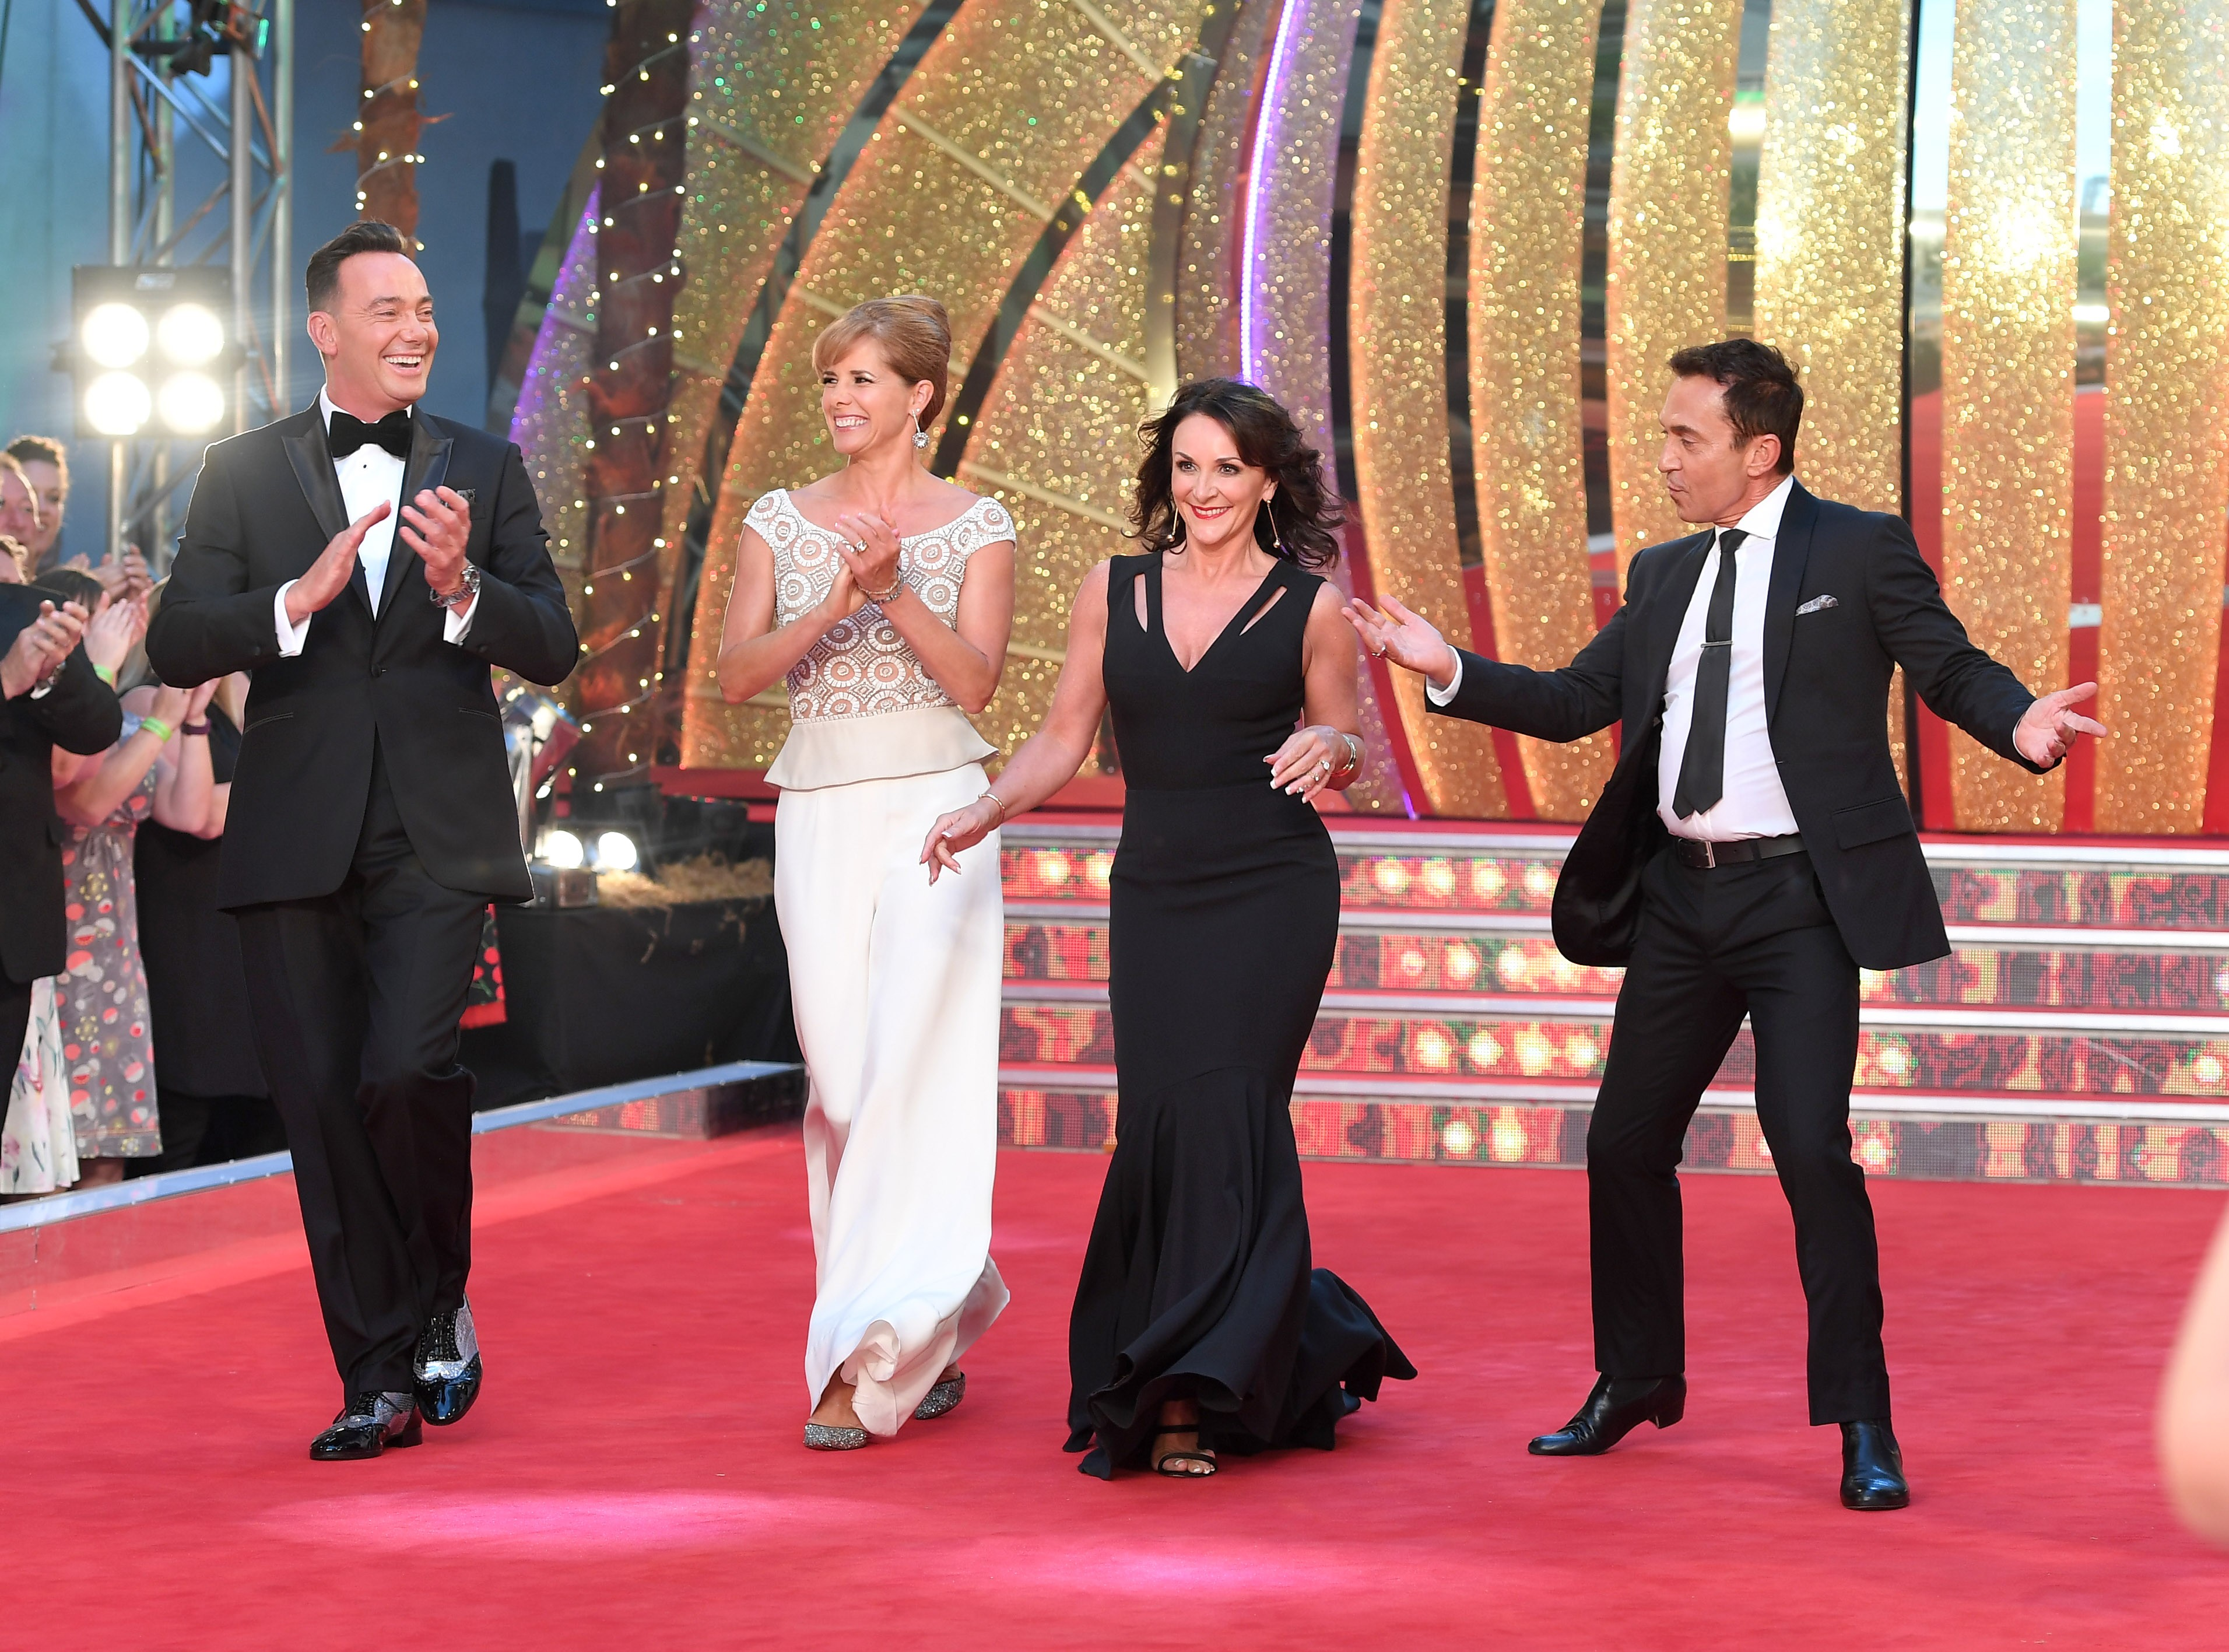 The Strictly Come Dancing judges Craig Revel Horwood, Darcey Bussell, Shirley Ballas and Bruno Tonioli